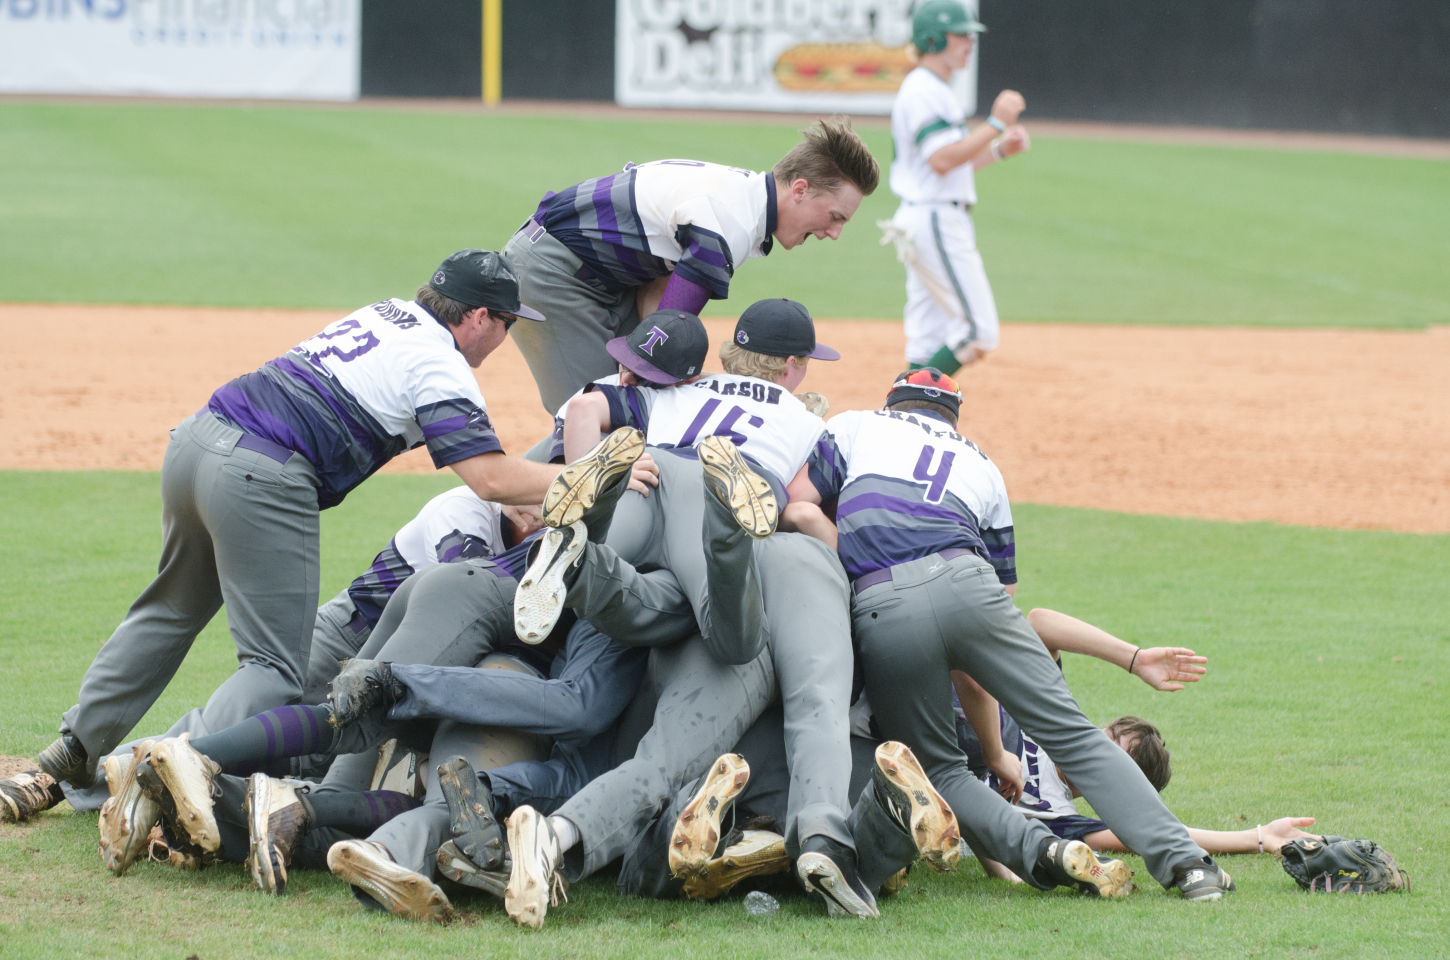 GISA STATE BASEBALL FINALS: Lions come through at the finish to win first state title